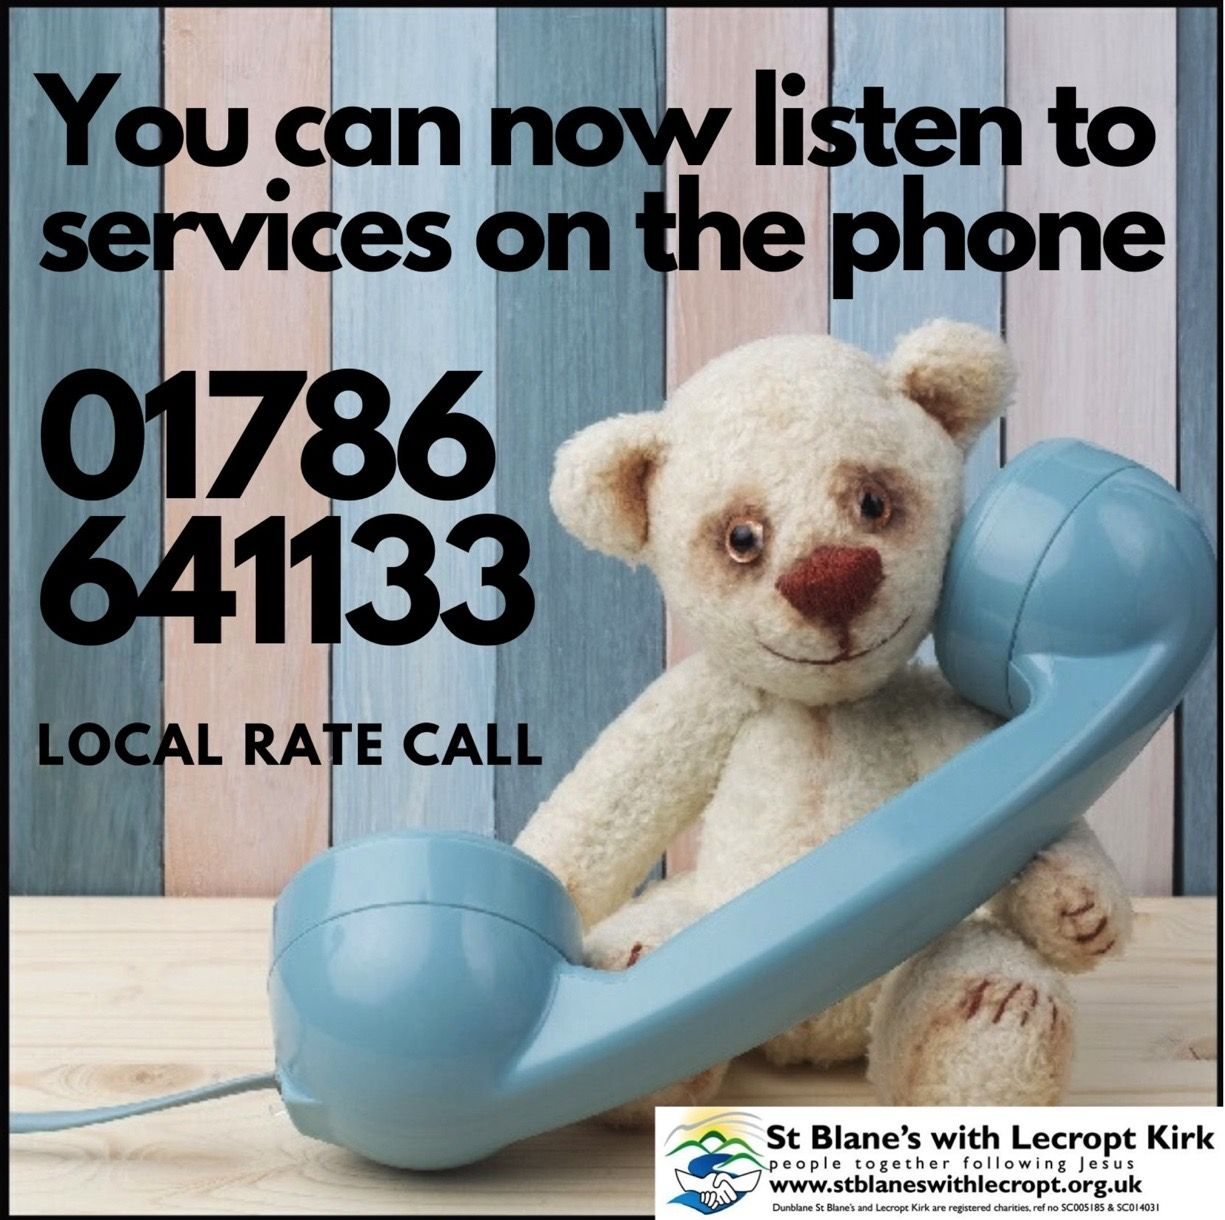 Listen to service on the phone